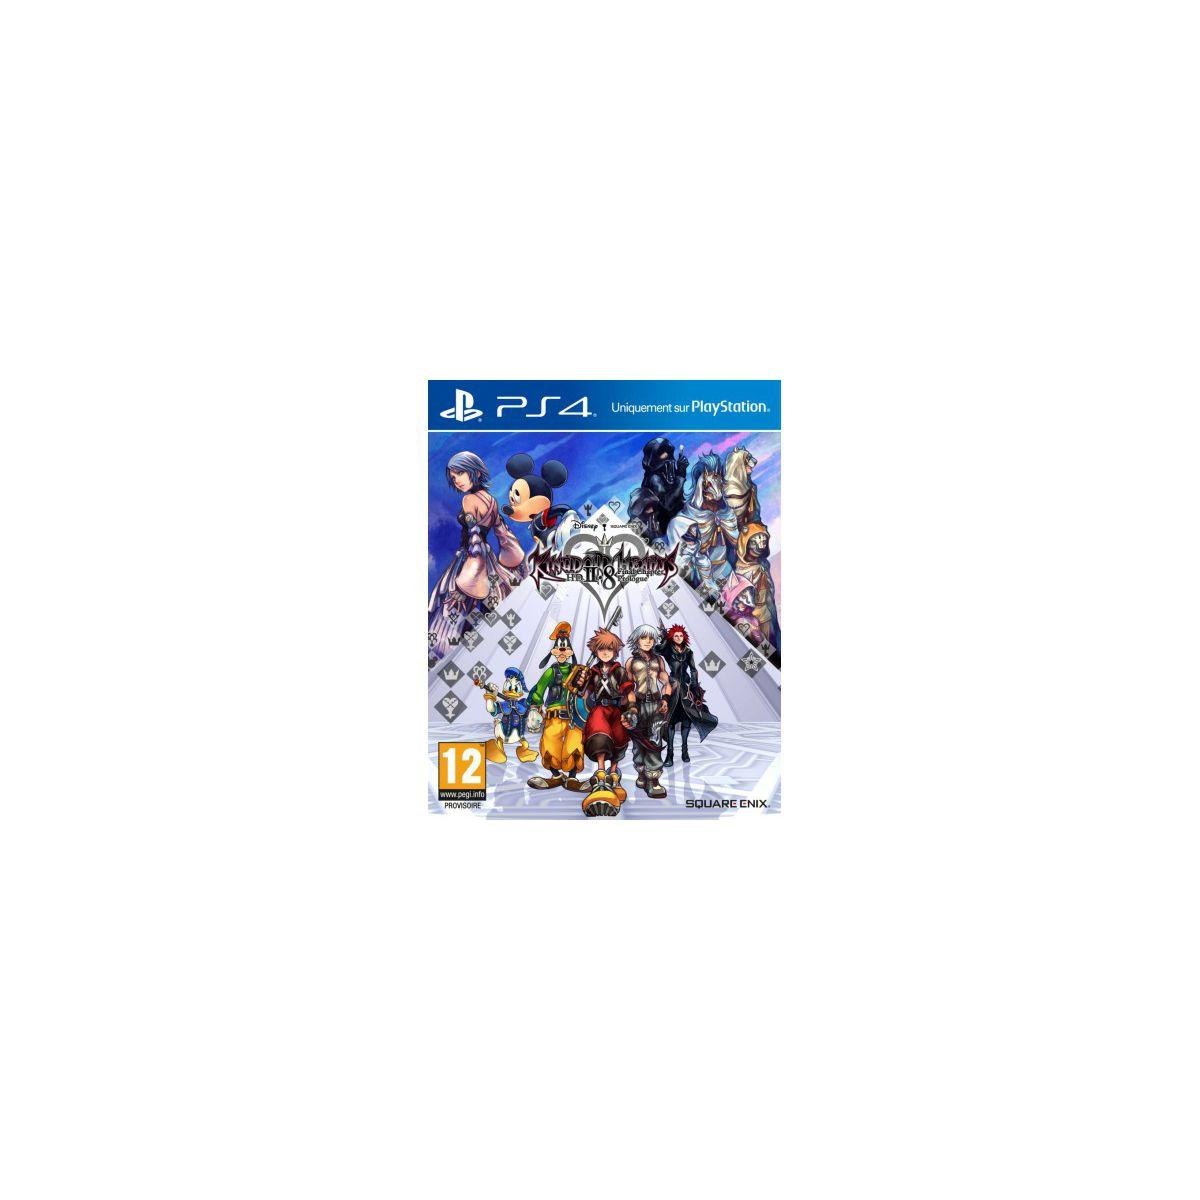 Jeu ps4 koch media kingdom hearts 2.8 - 2% de remise immédiate avec le code : cool2 (photo)